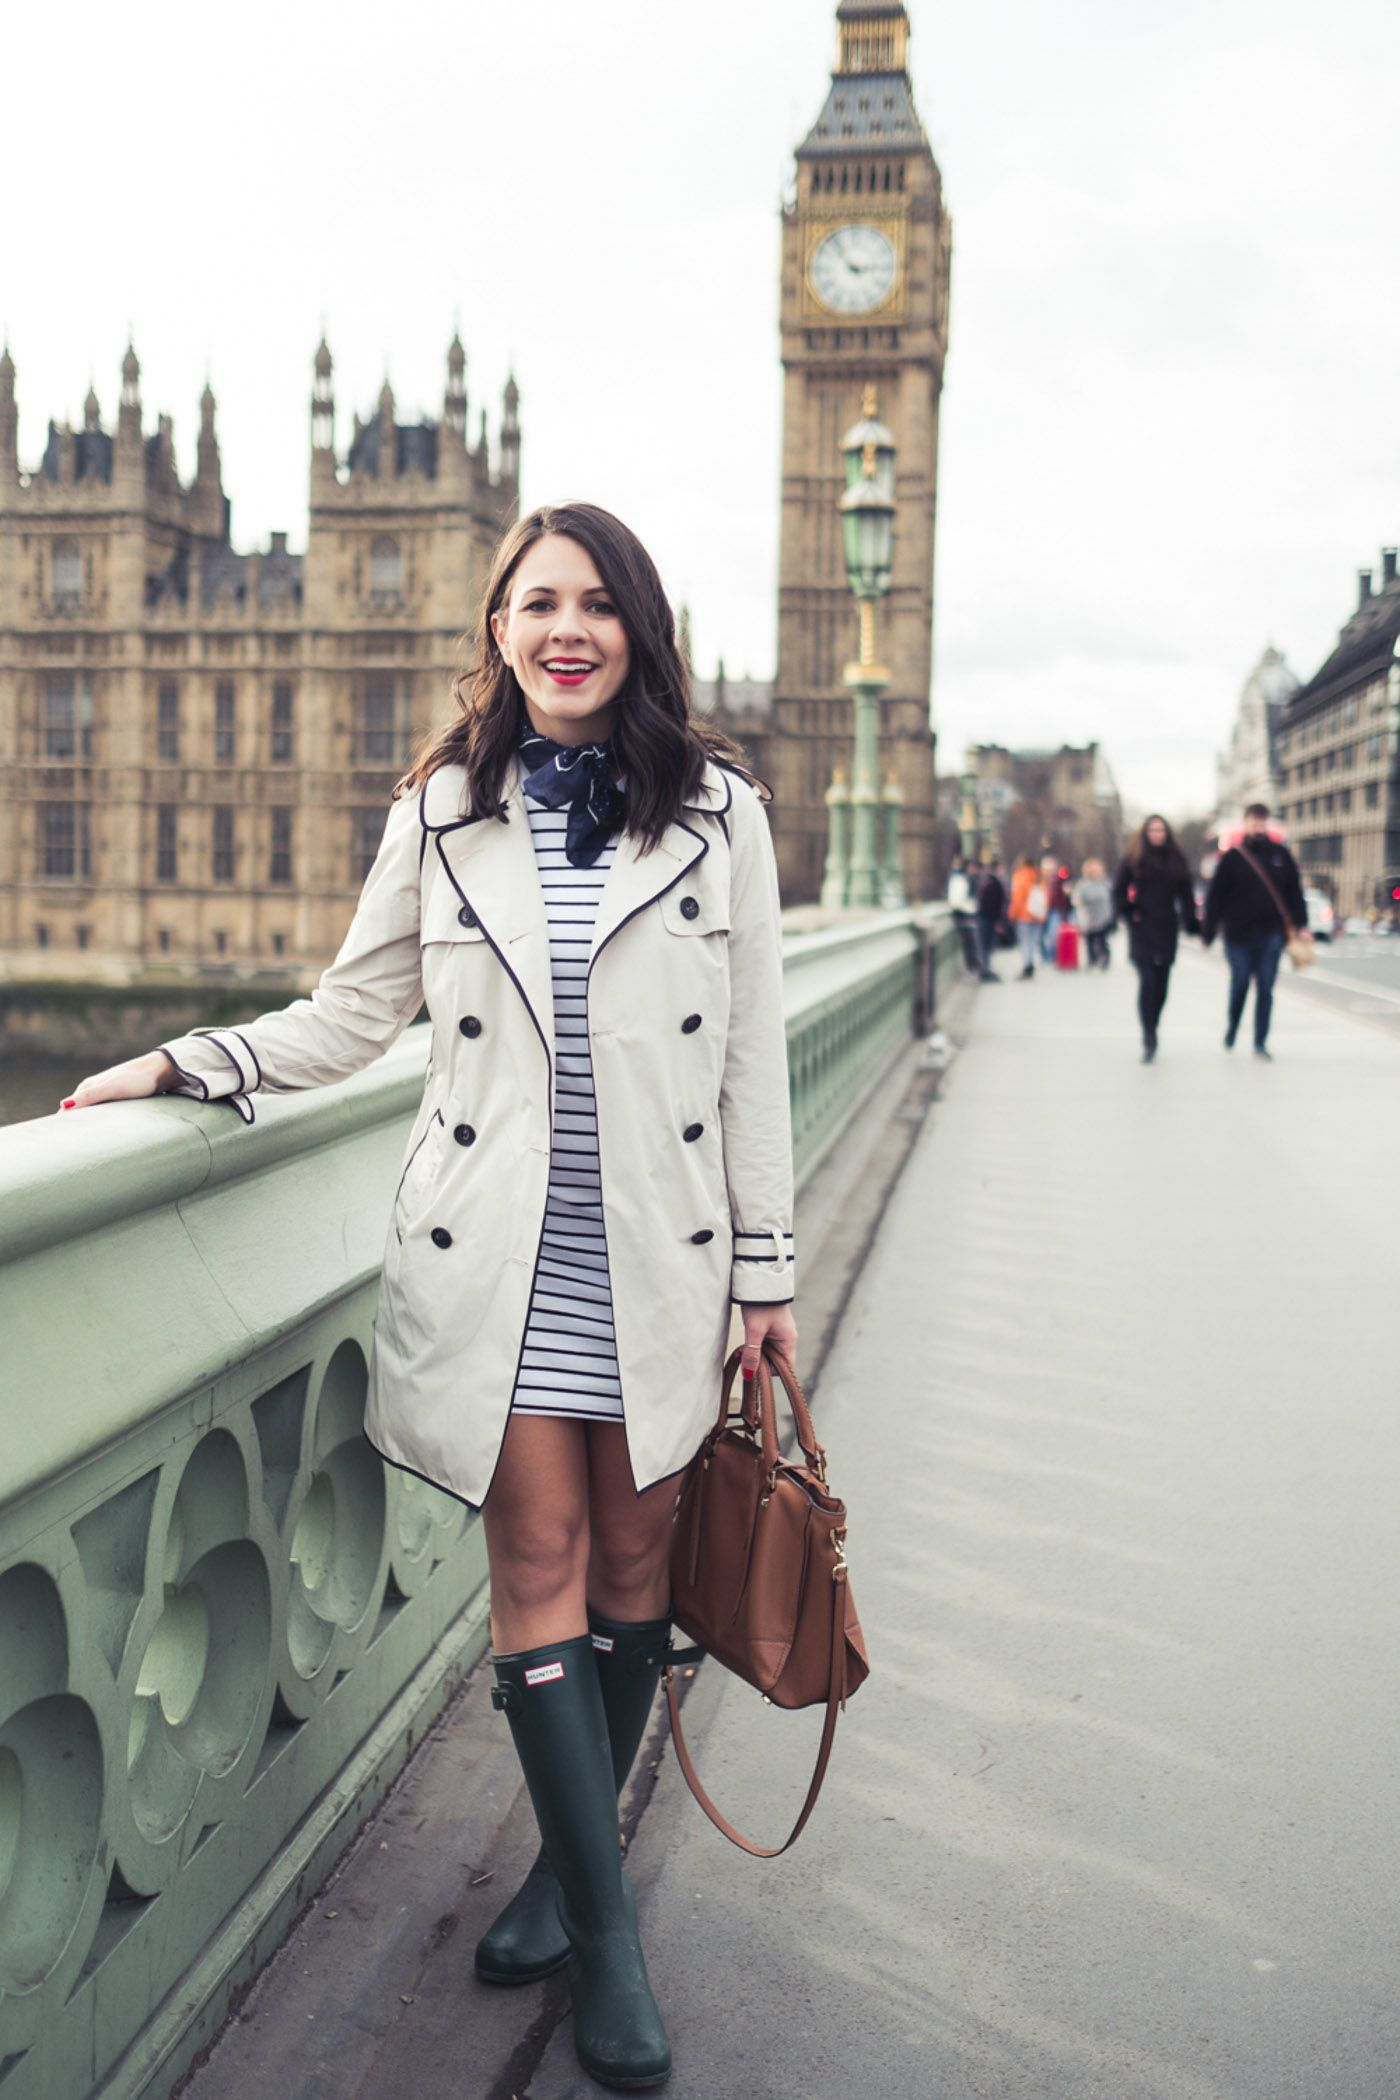 The perfect striped dress outfit for spring showers. Paired with Hunter  boots and a trench, this is a classic look for a London adventure.